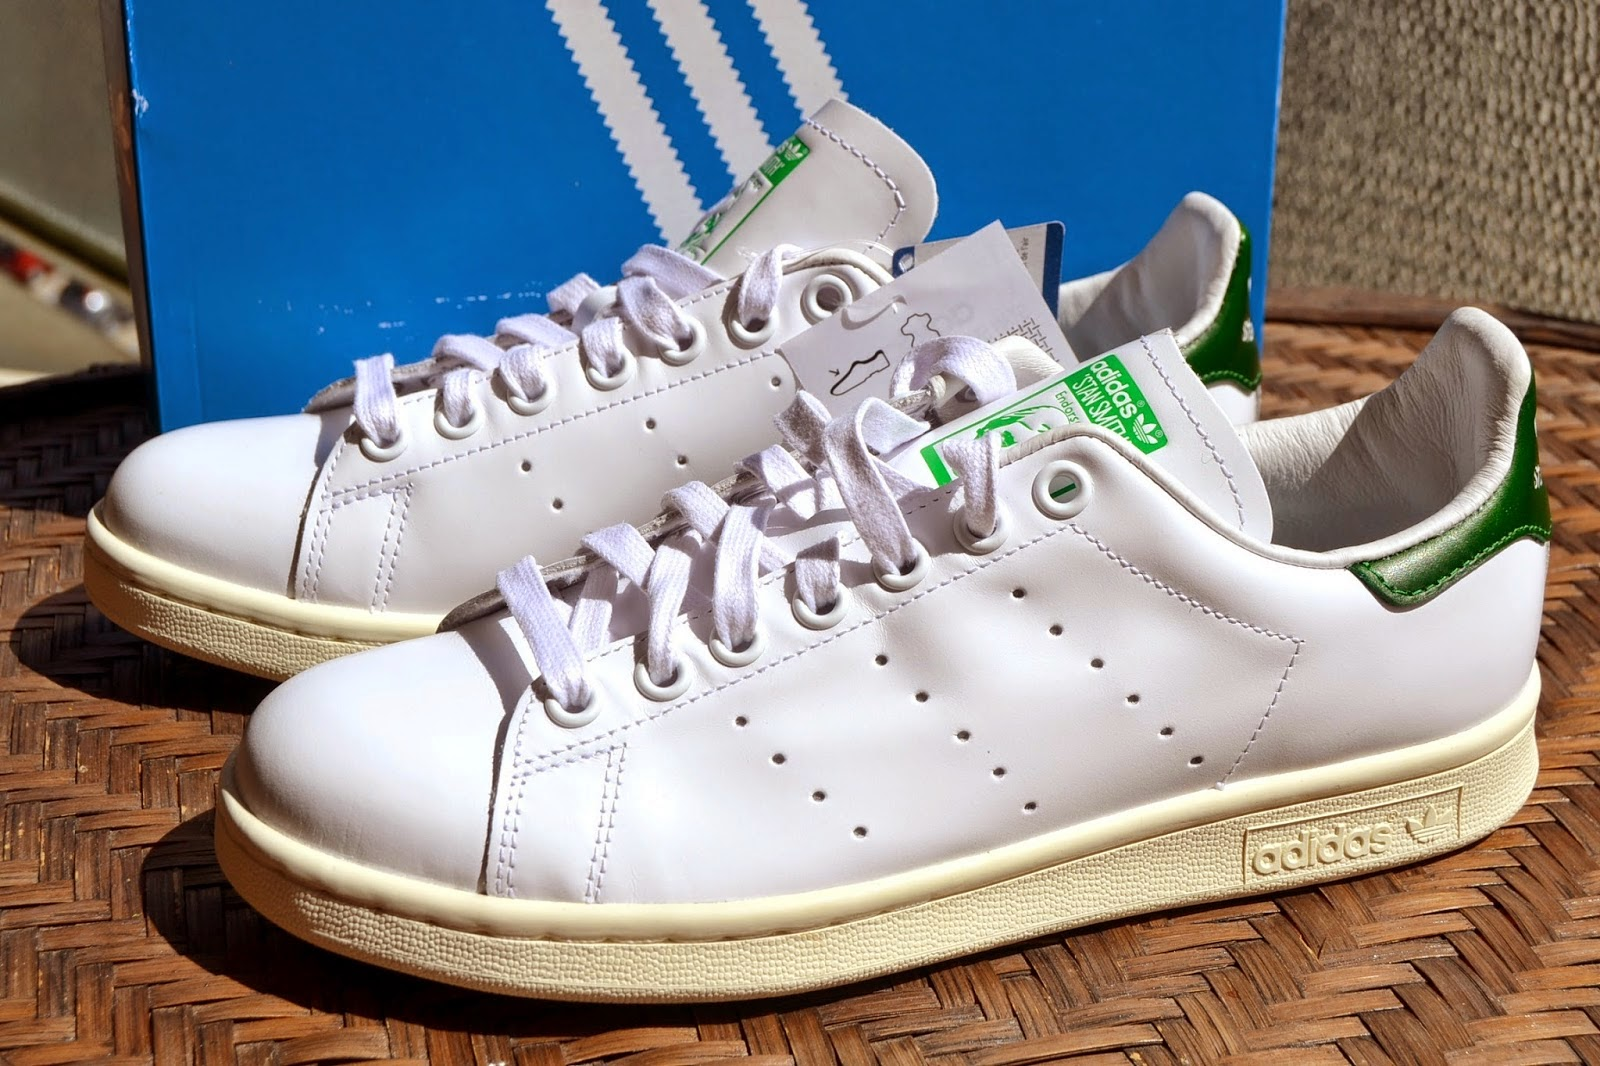 http://www.syriouslyinfashion.com/2015/04/adidas-stan-smith-sneakers.html